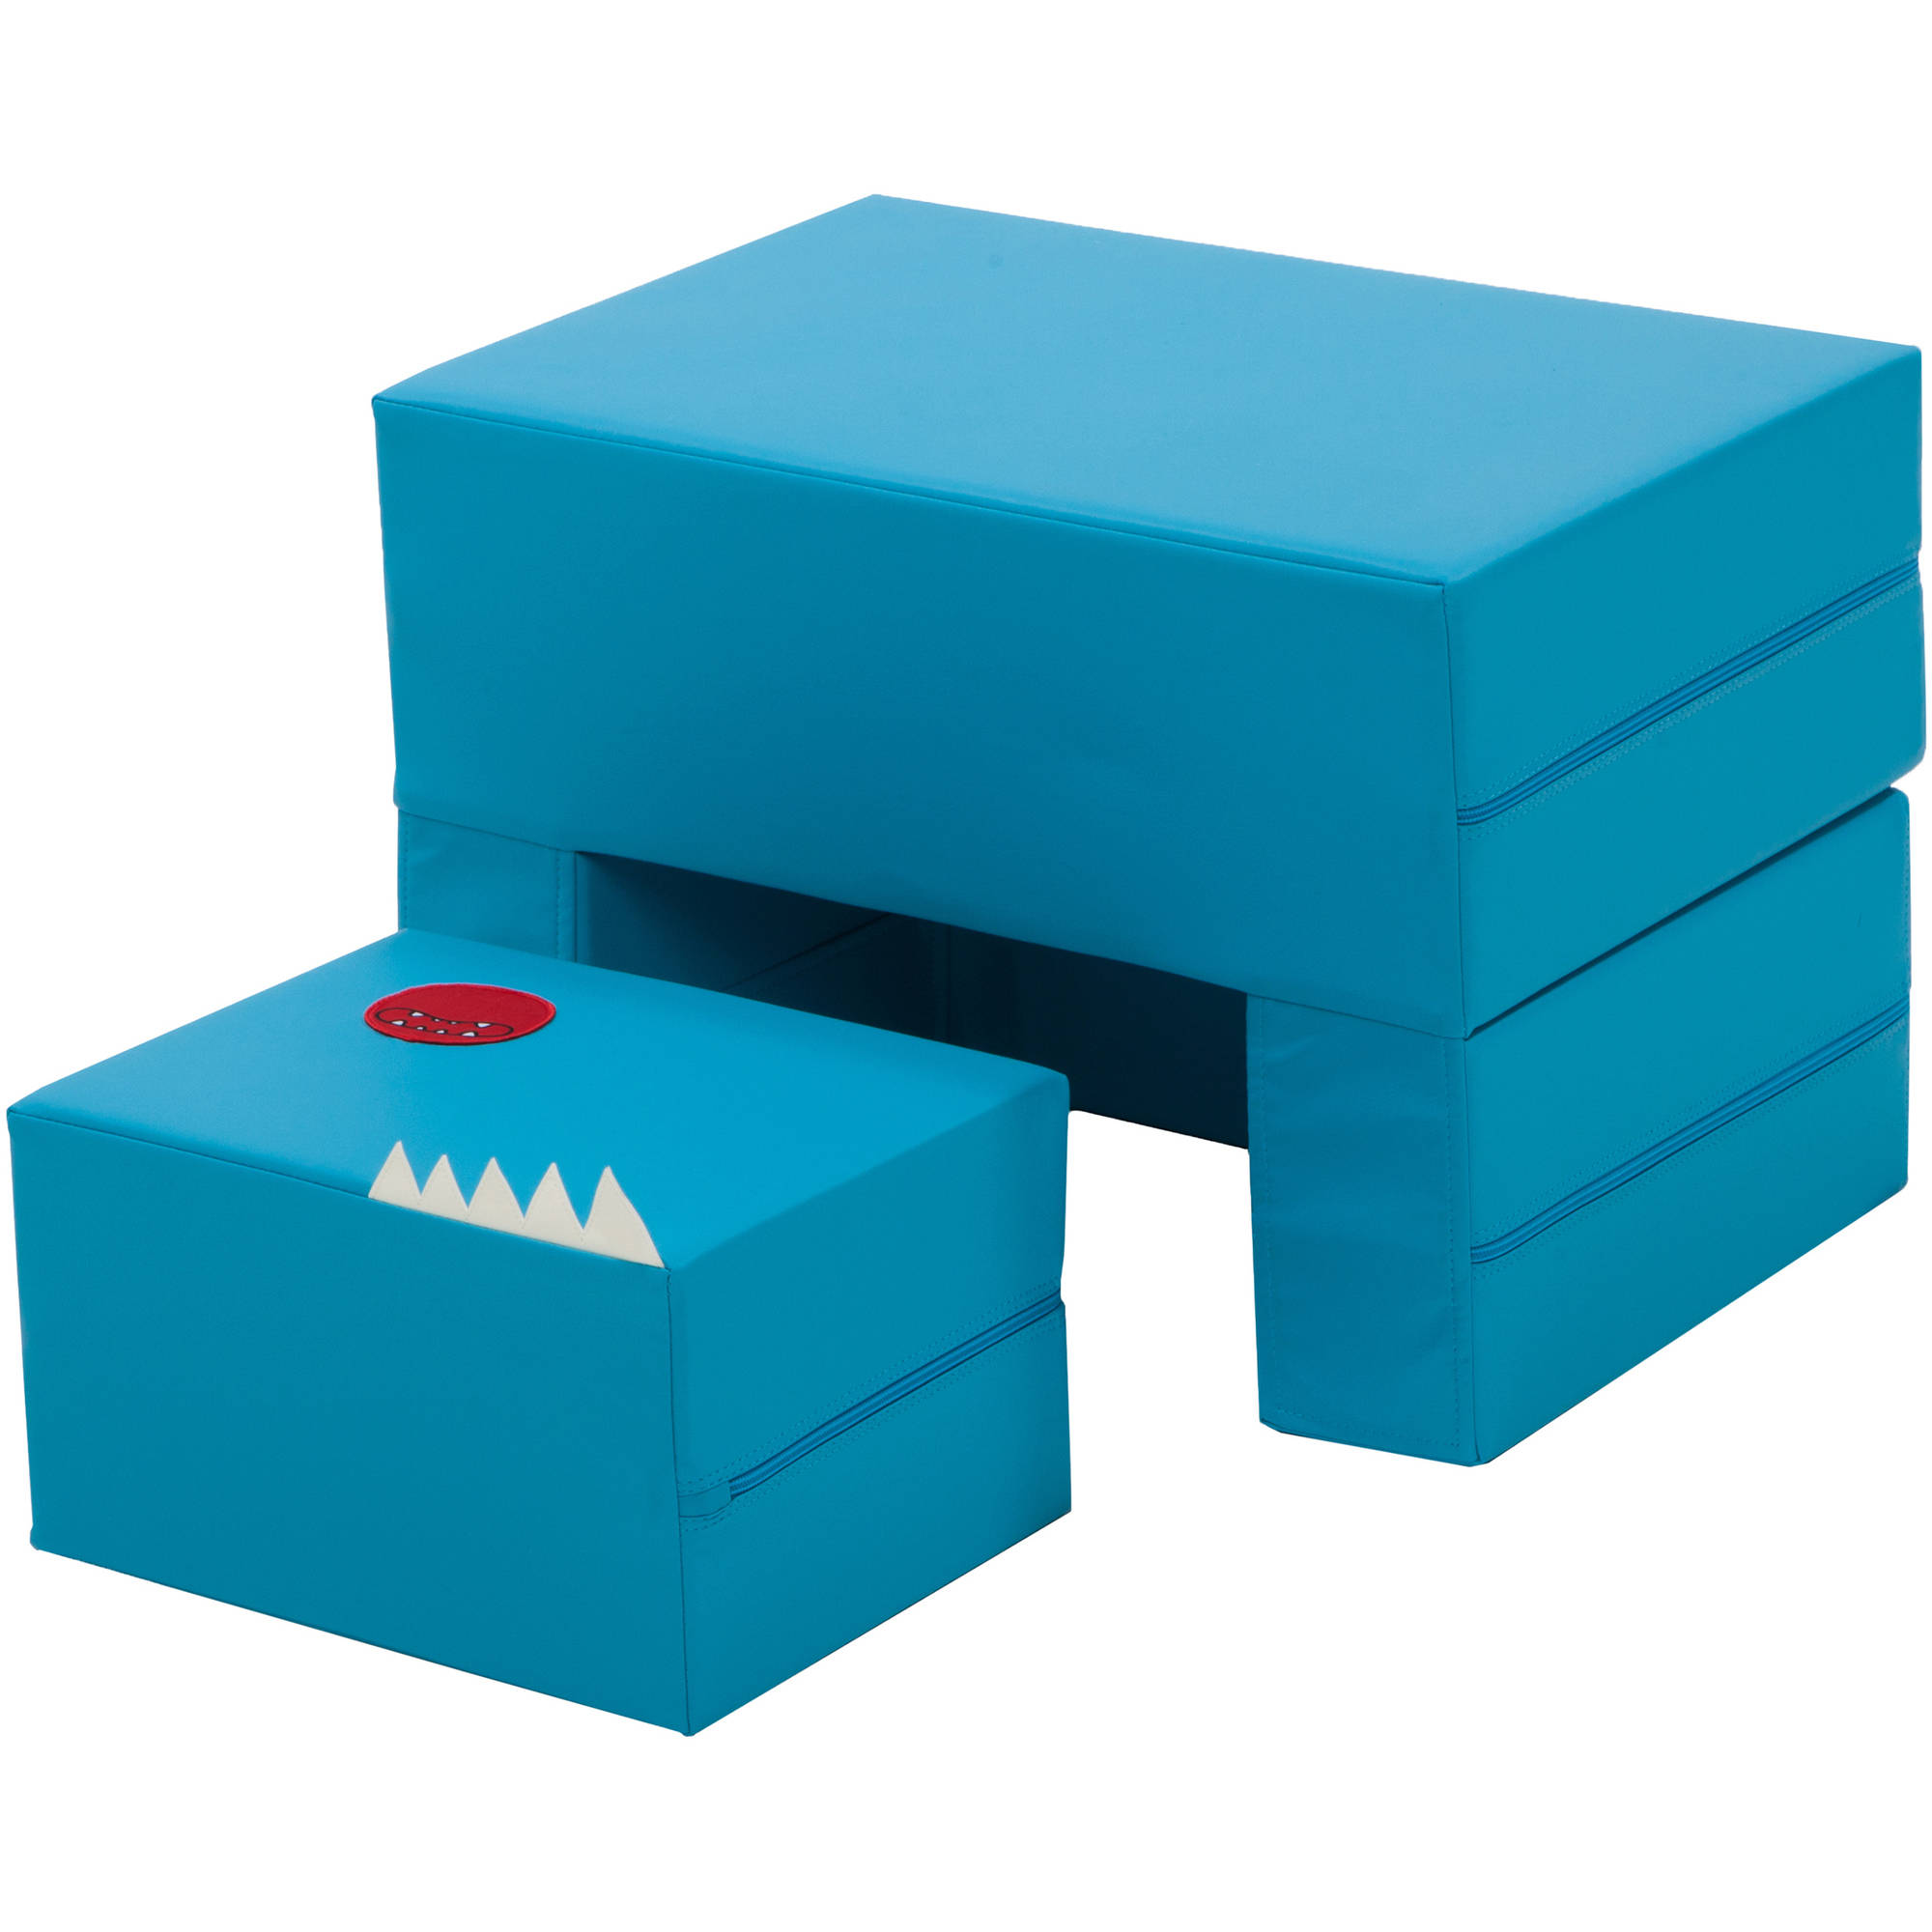 Cake Sofa Transformable Play Furniture for Kids, Blue by